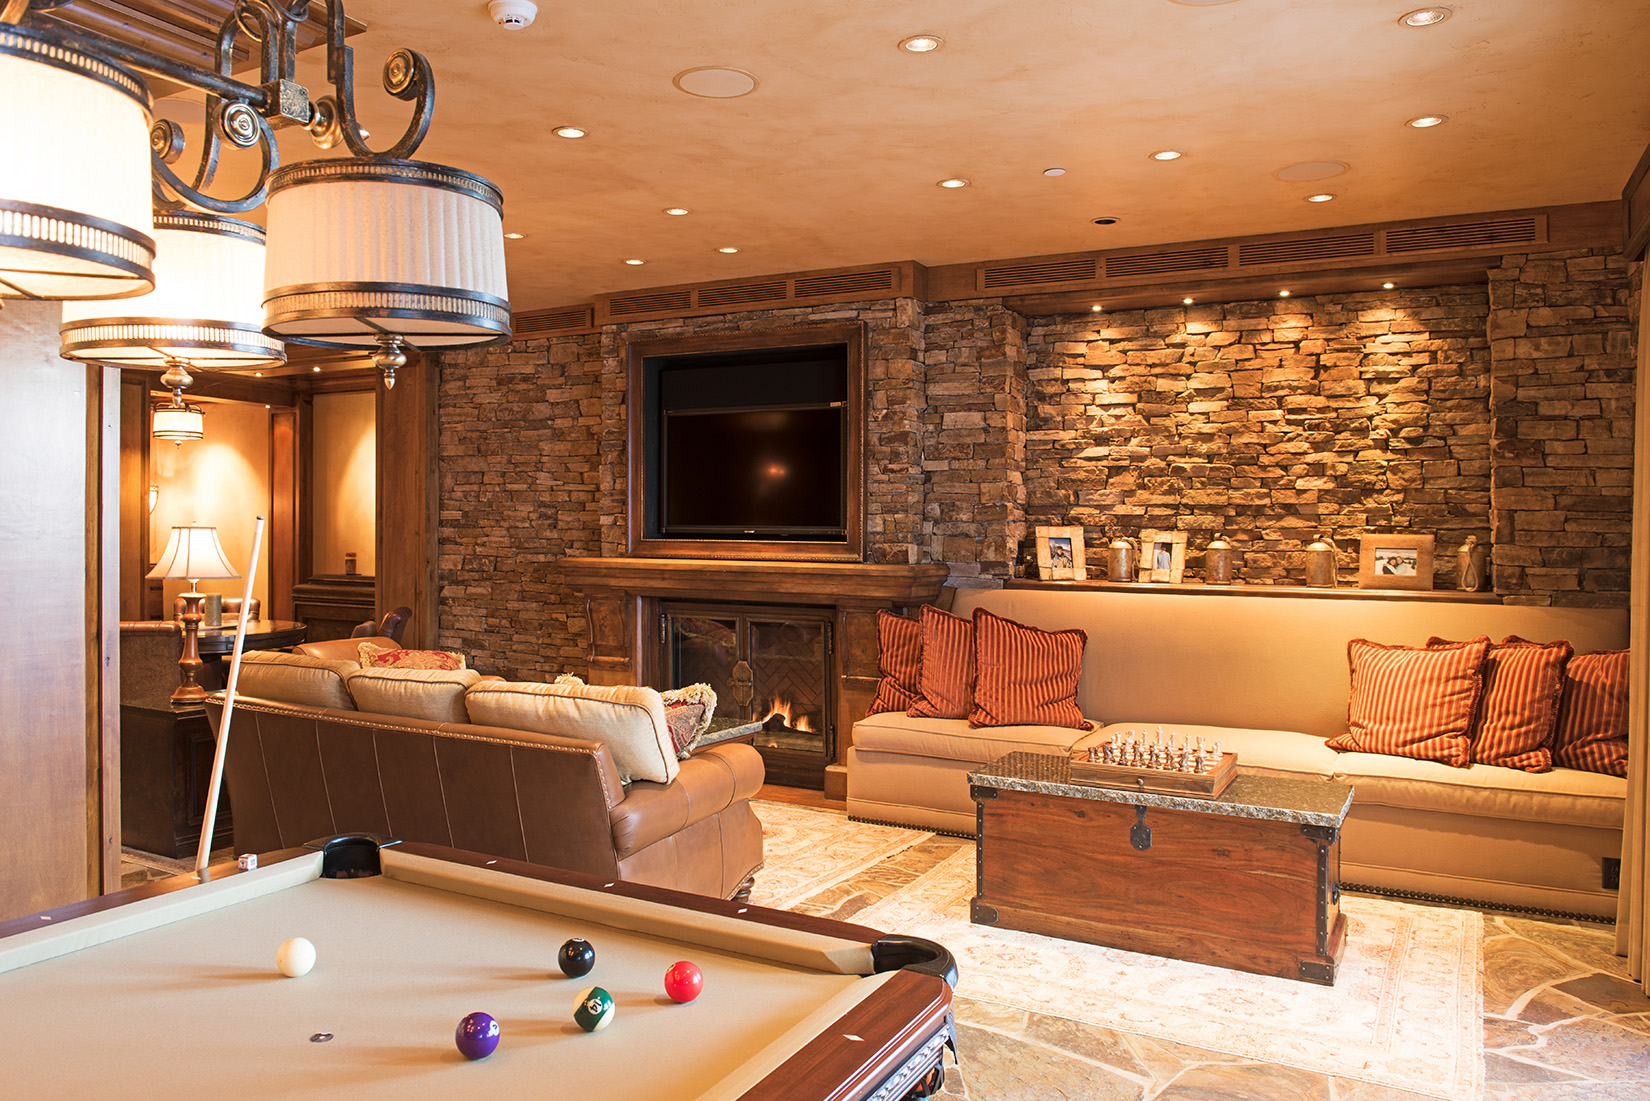 What's a ski home without a recreation room?